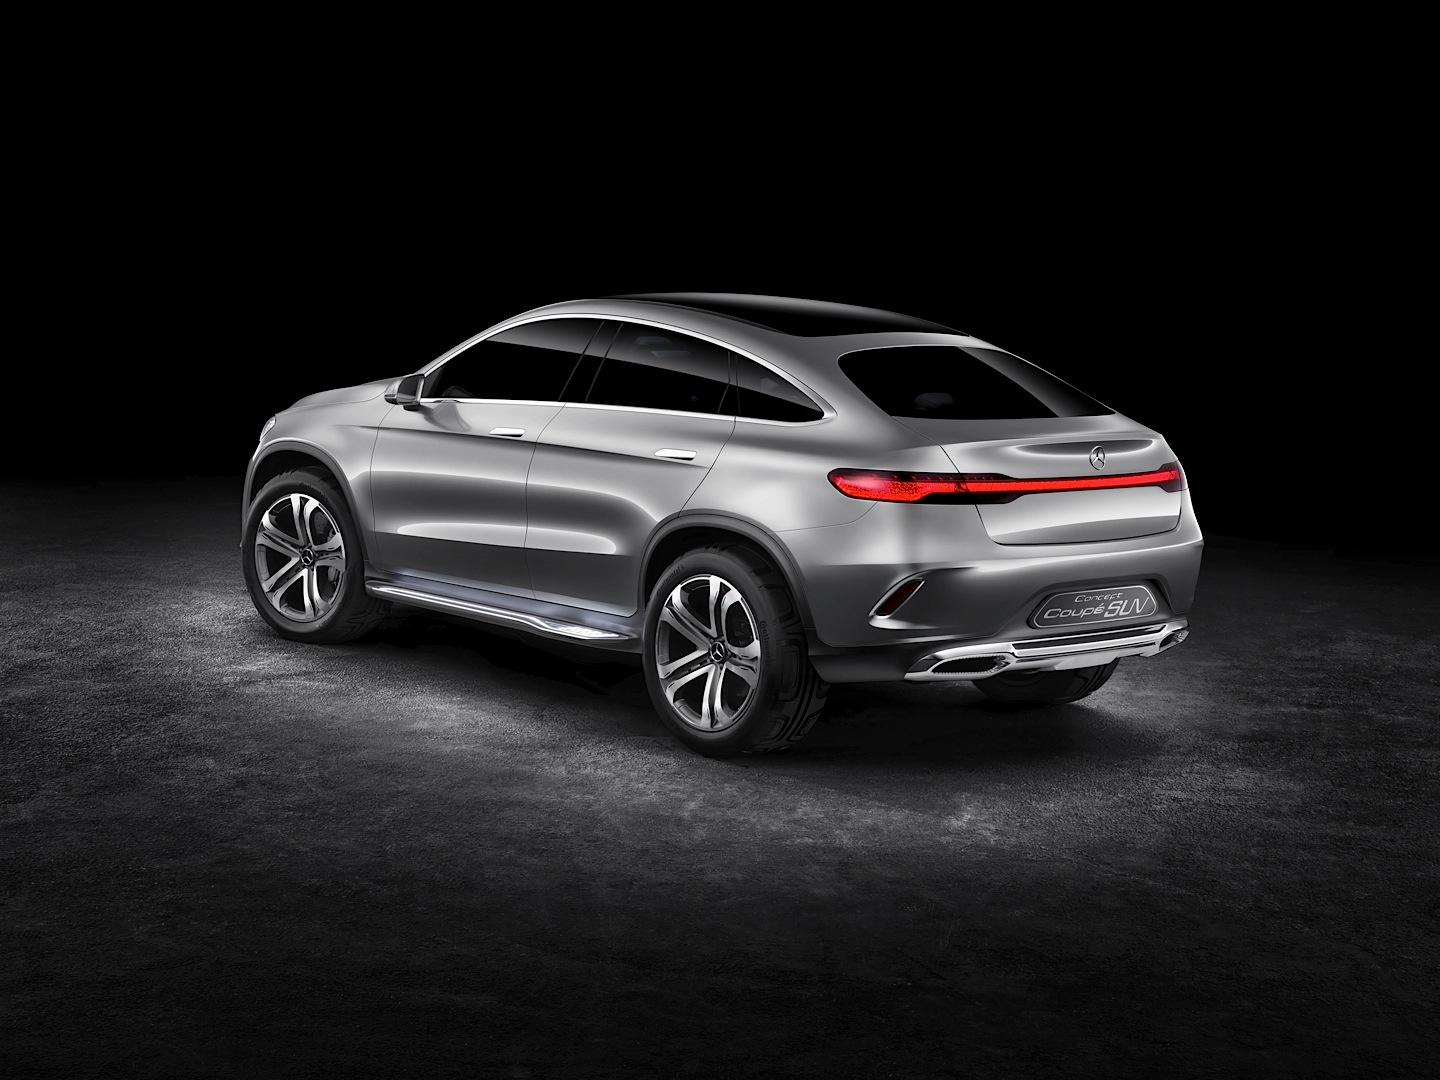 Mercedes benz concept coupe suv officially revealed for Different models of mercedes benz